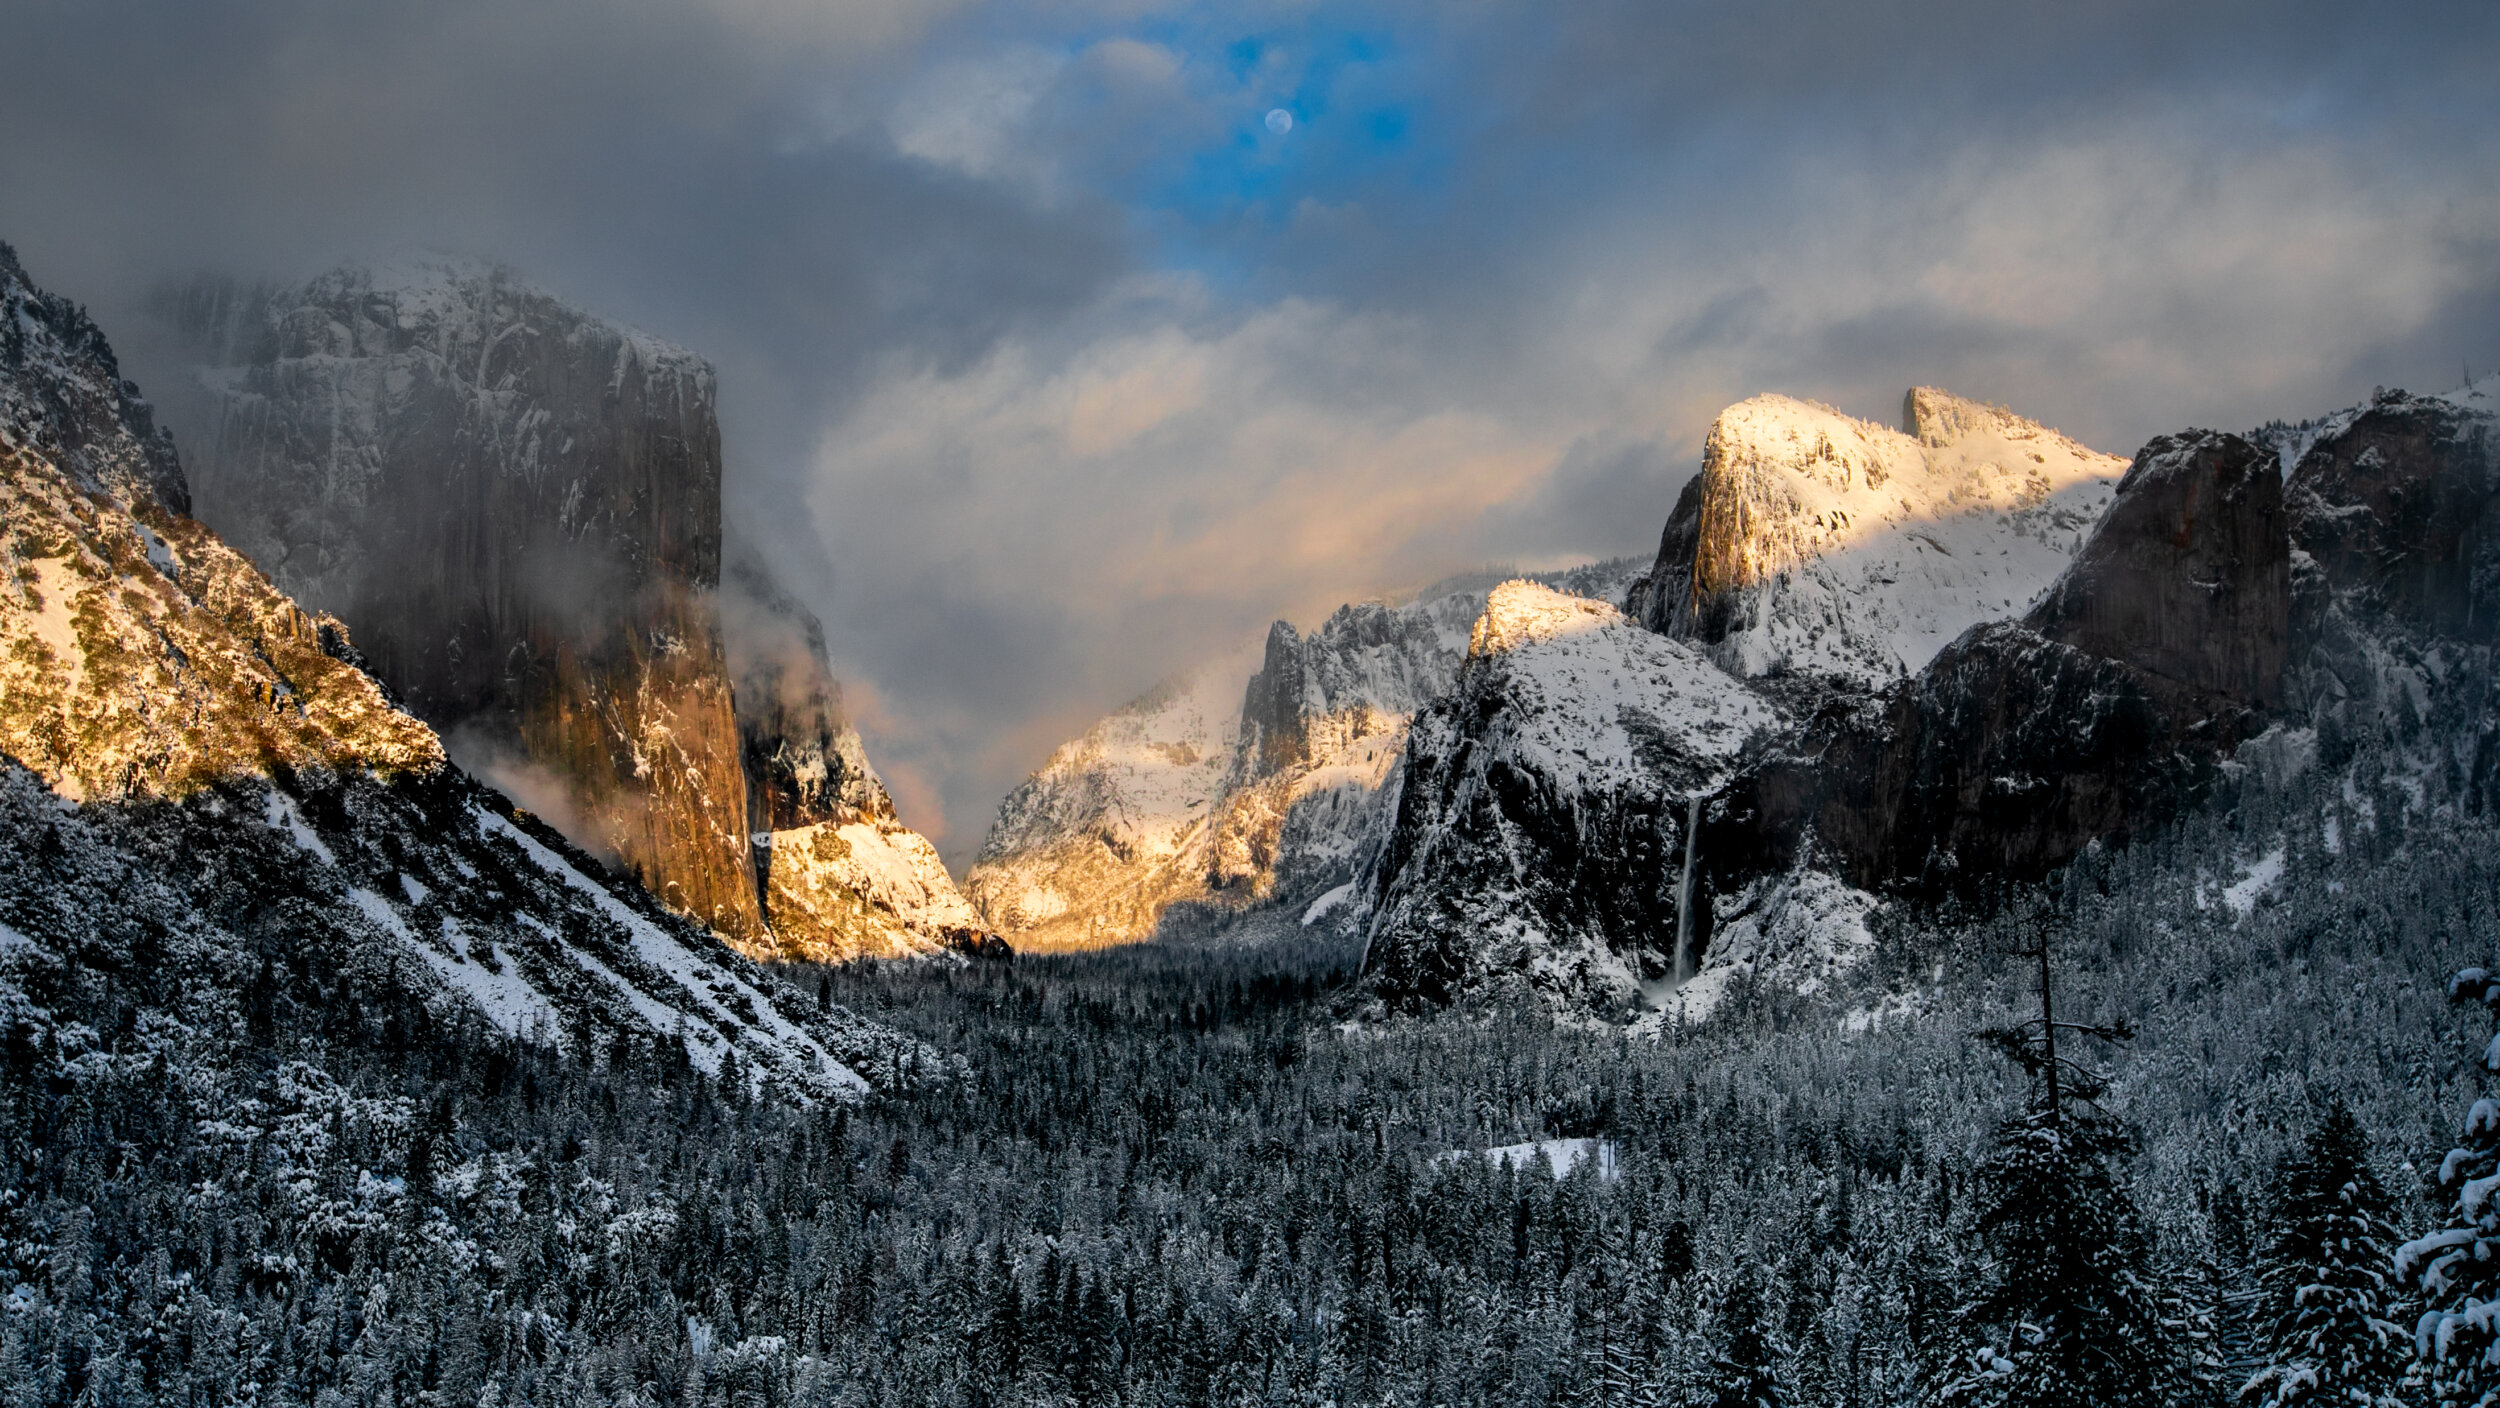 Yosemite Mountains and Trees